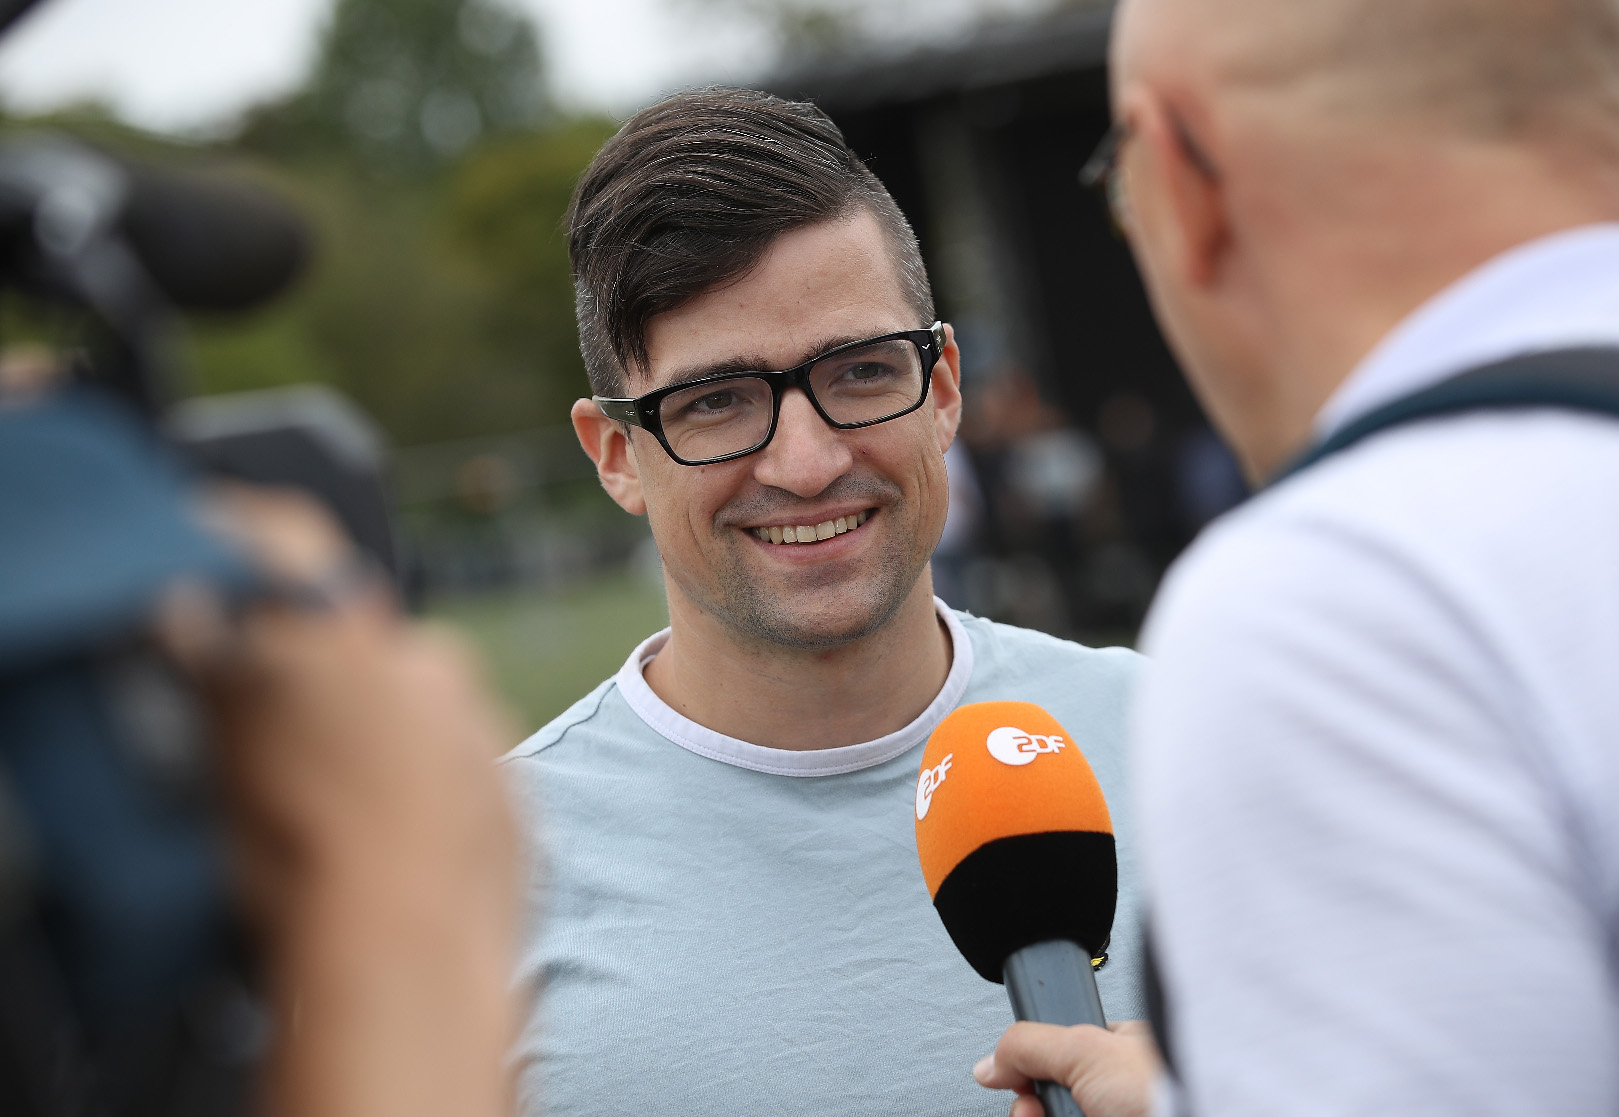 DRESDEN, GERMANY - AUGUST 25:  Martin Sellner, a leading member of the Identitarian Movement, speaks to journalists at a gathering entitled